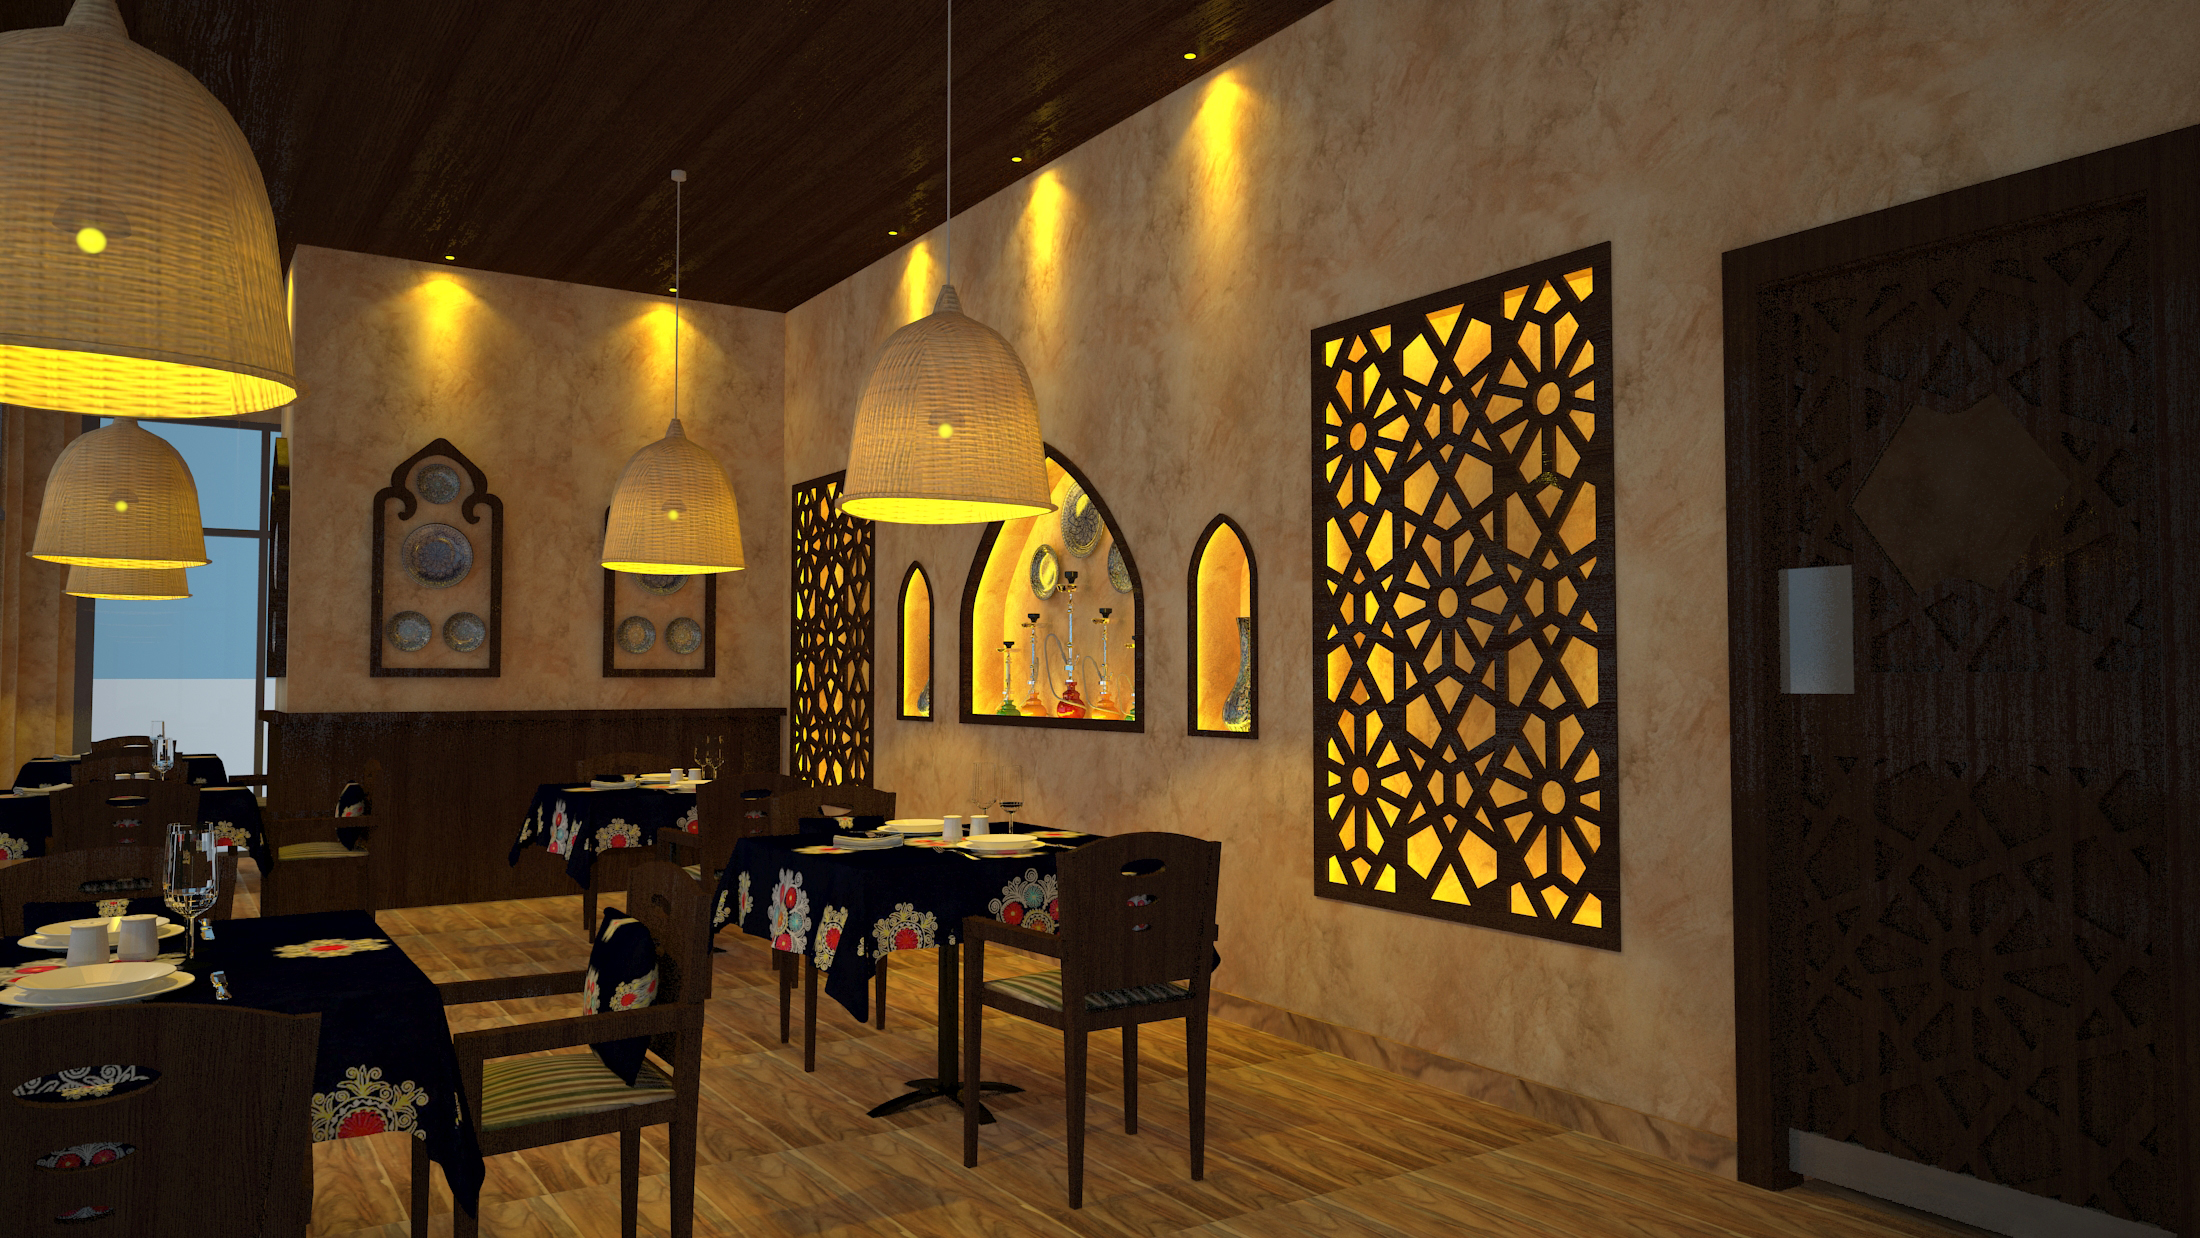 restaurant interior design companies in dubai best restaurant fit rh a2zinterior com restaurant interior design trends 2019 restaurant interior design trends 2019